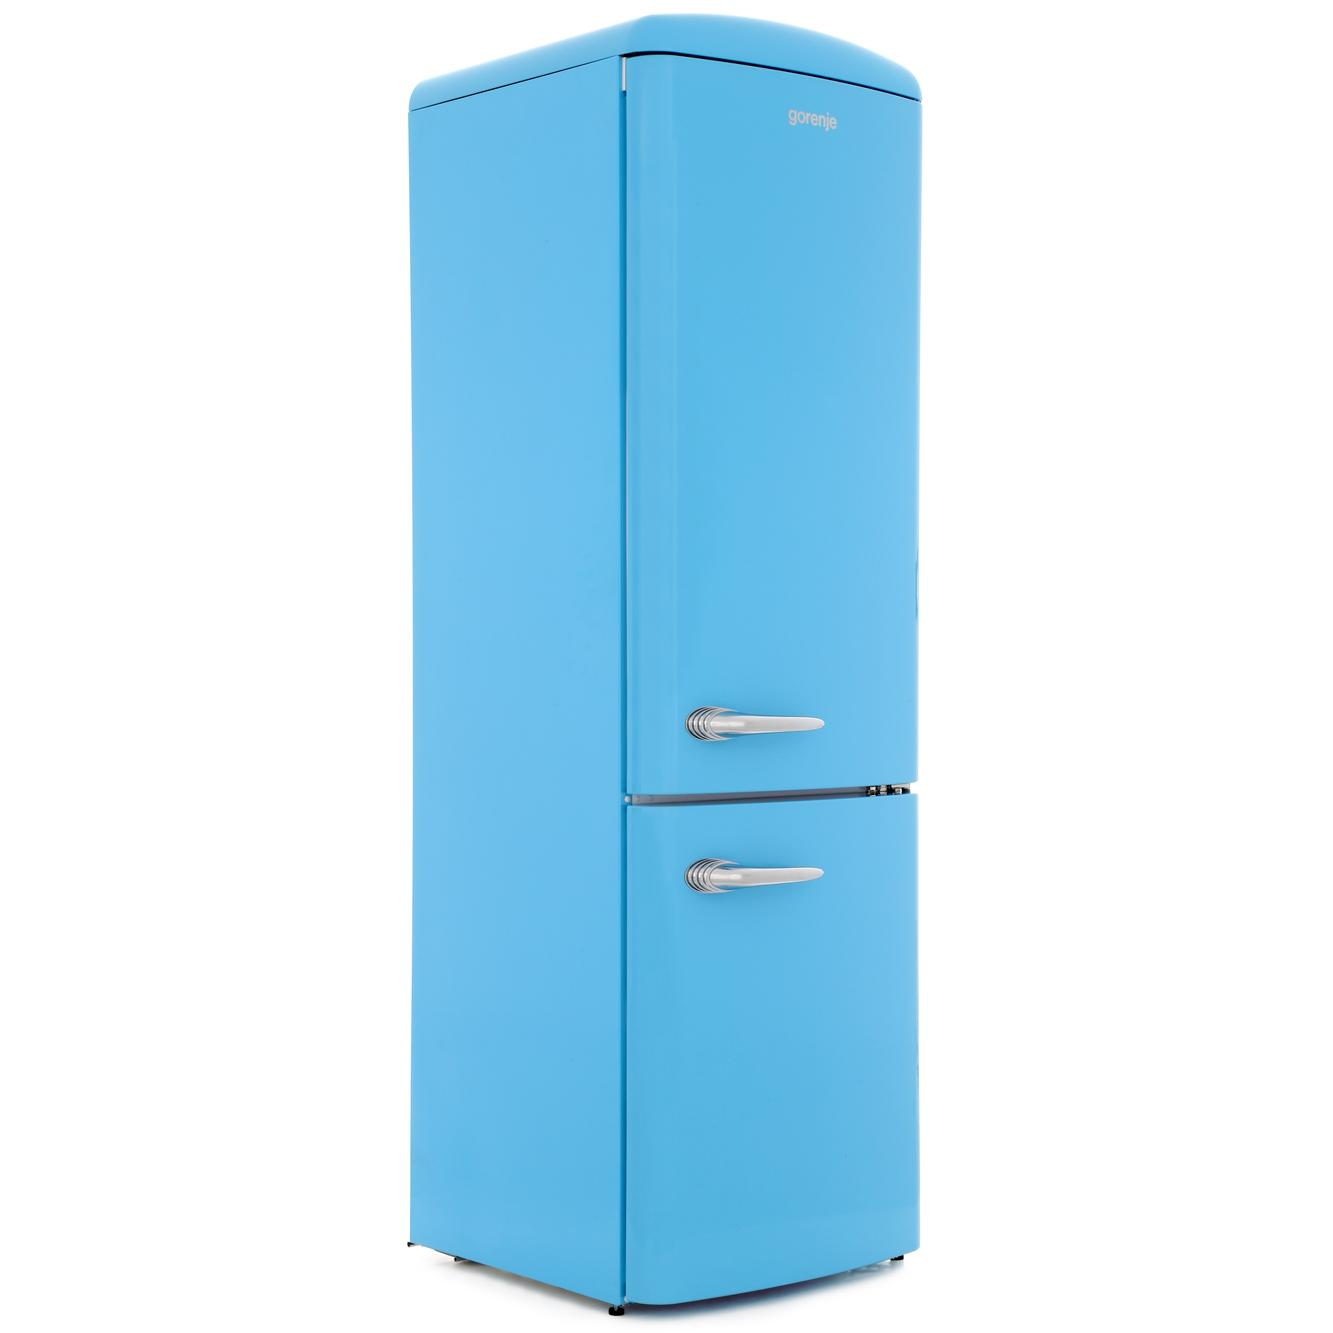 Gorenje ORK193BL Retro Static Fridge Freezer